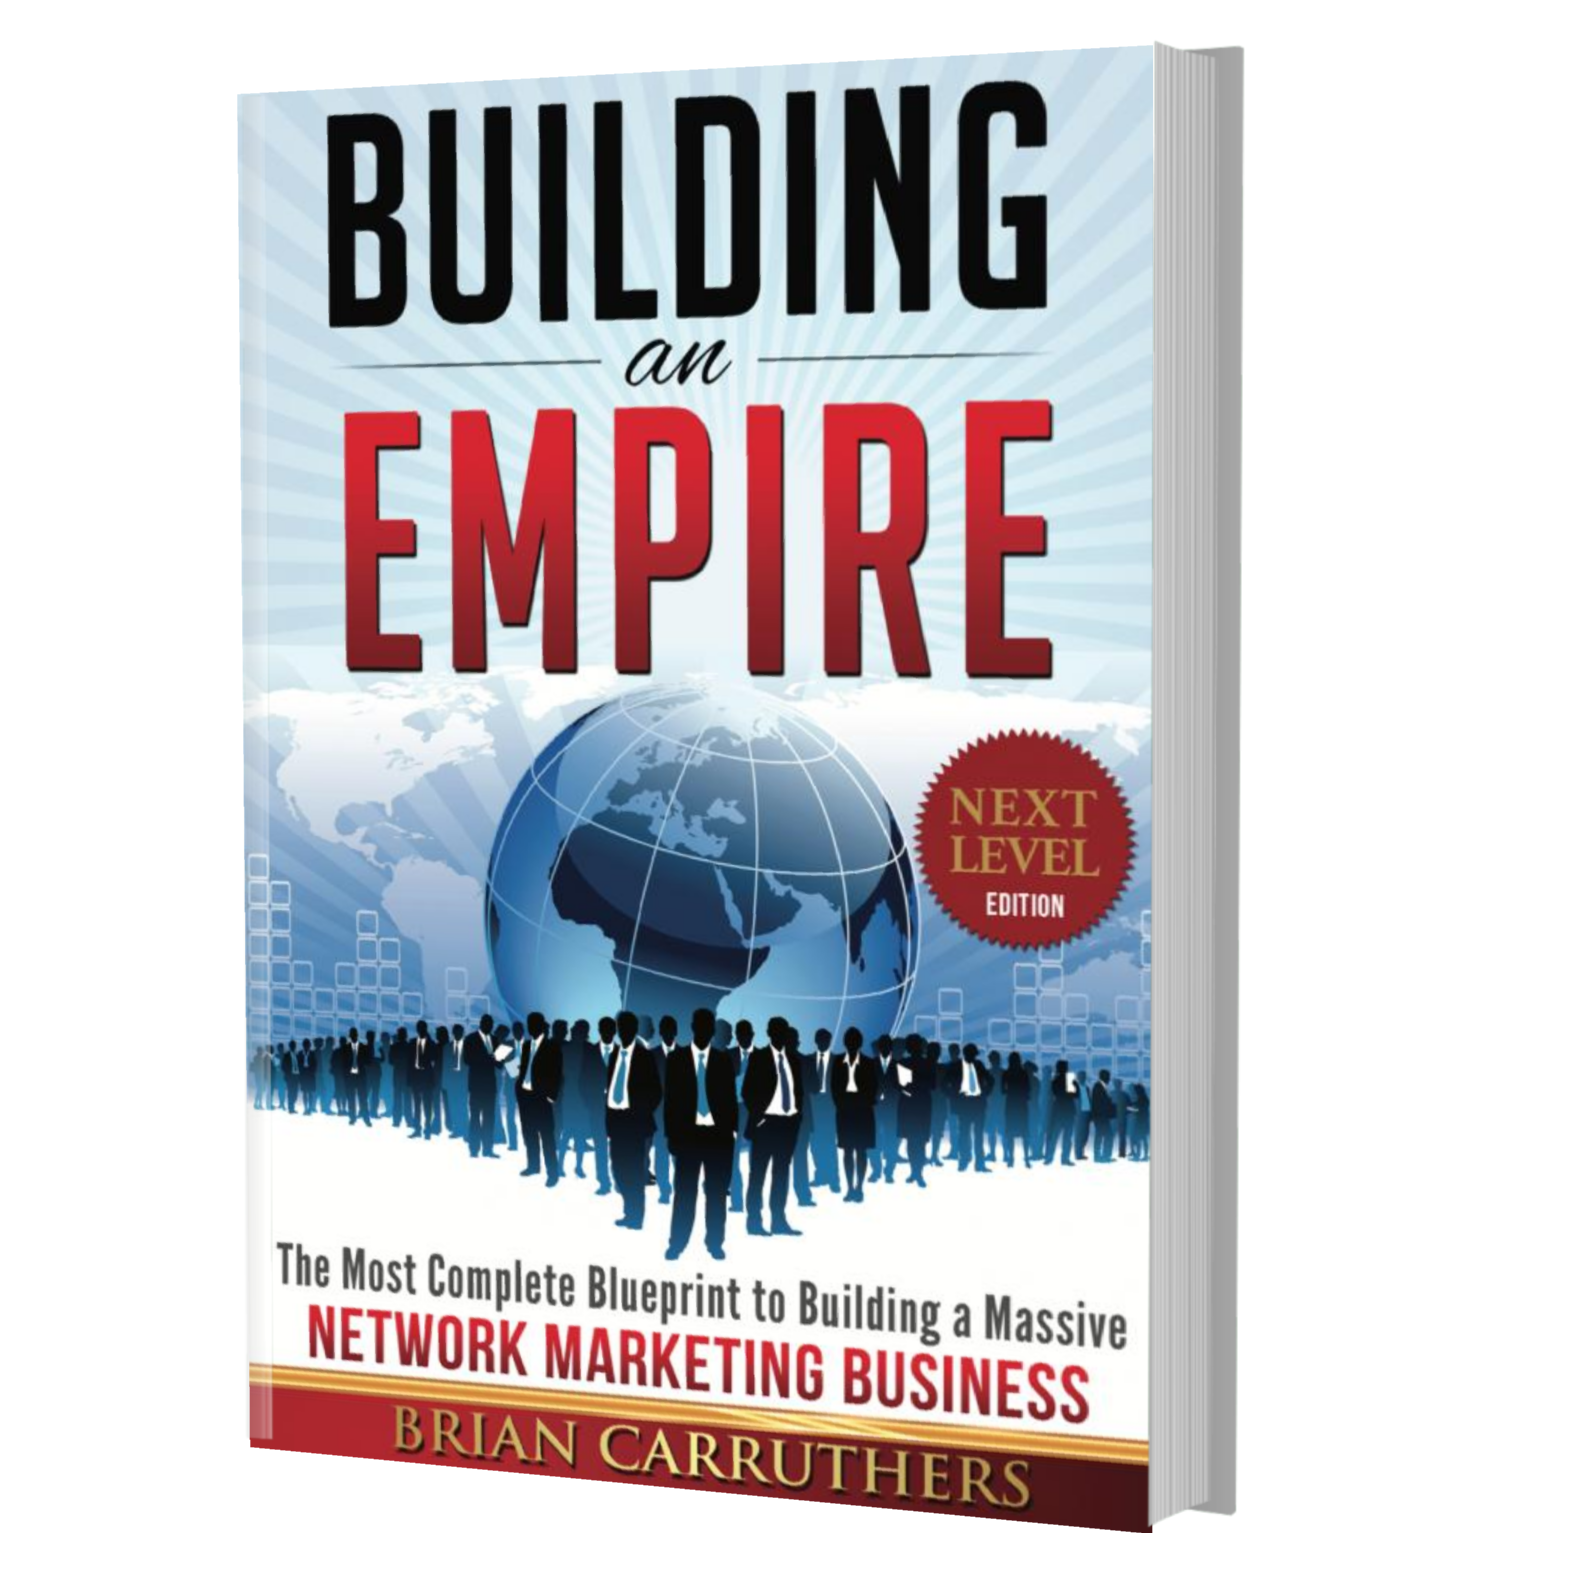 Building An Empire Next Level Edition By Brian Carruthers